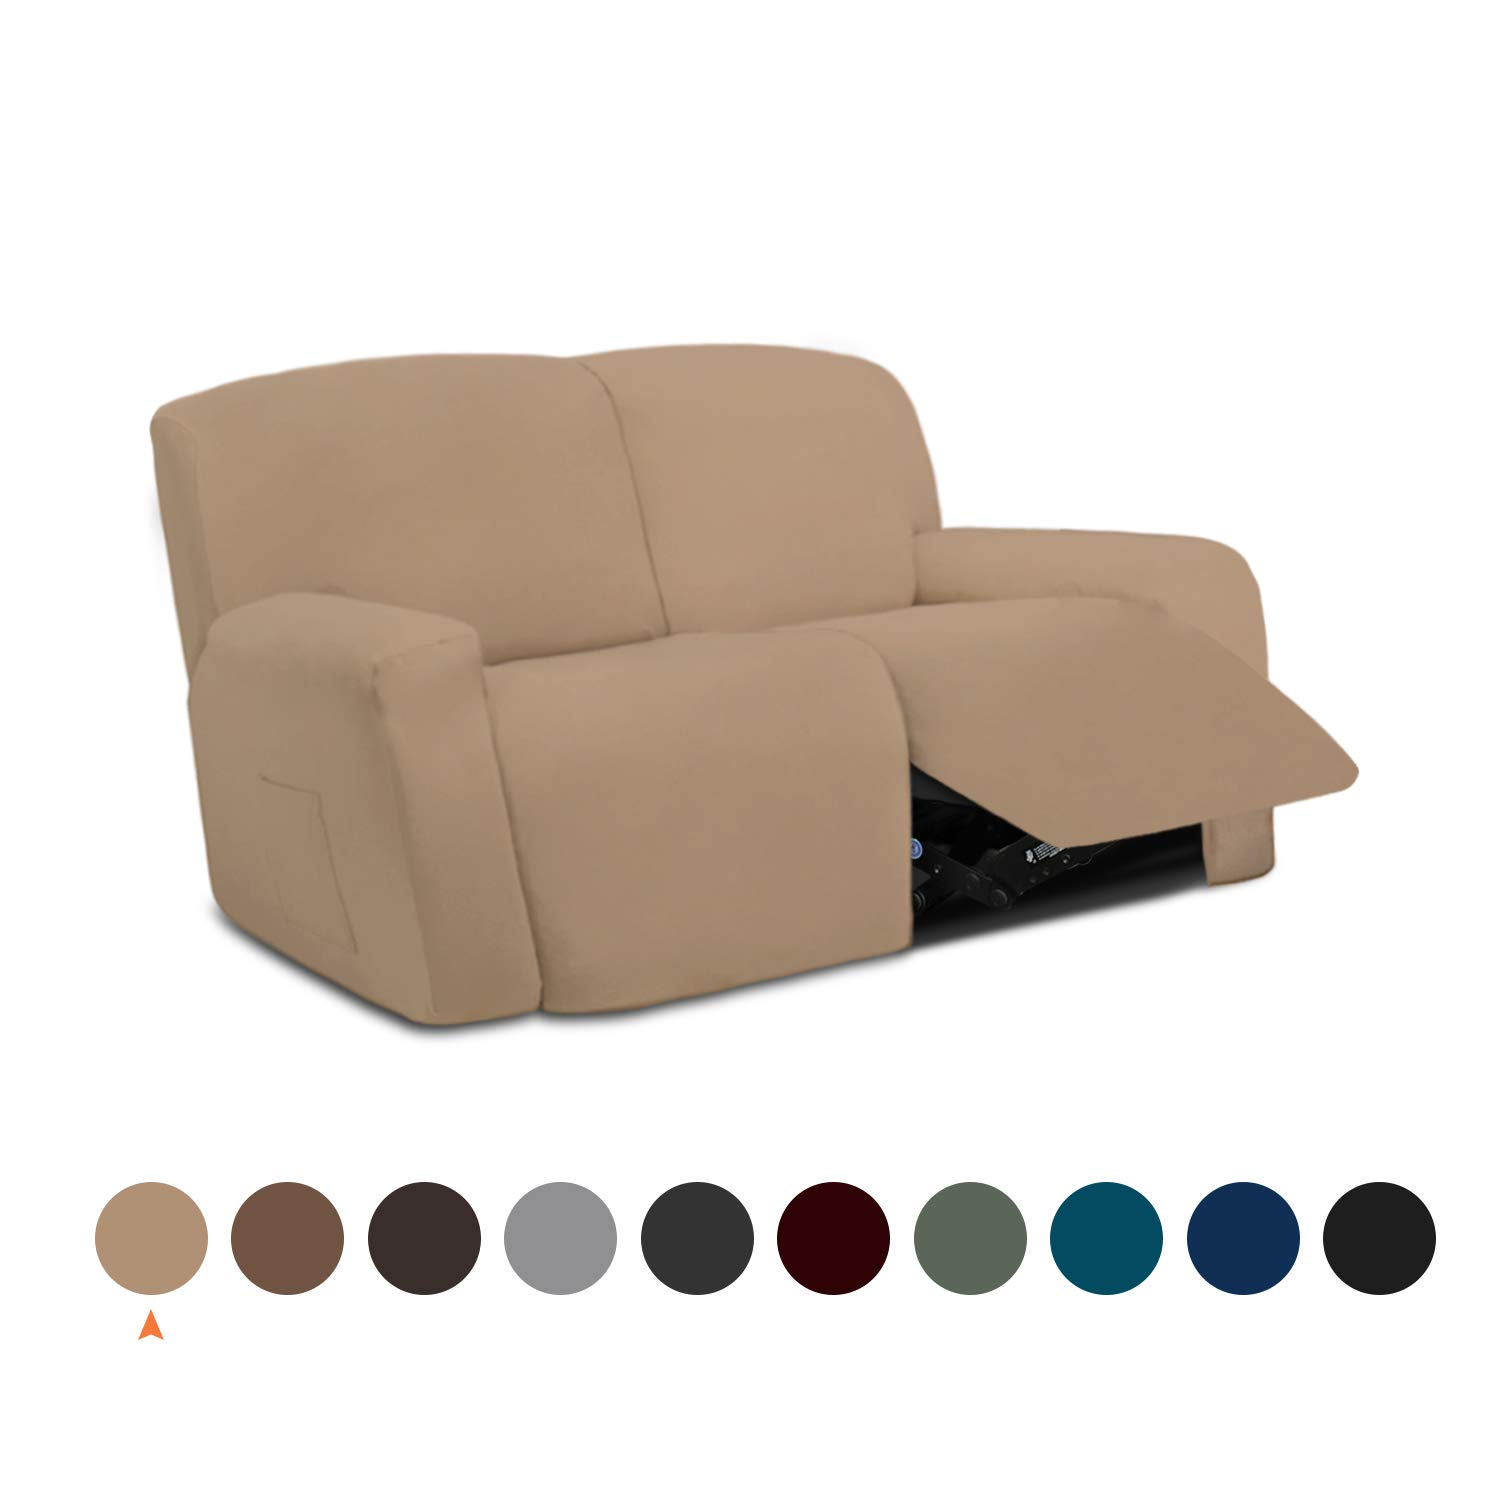 Easy Going silpcovers Furniture slipcovers%EF%BC%88Recliner Loveaeat%EF%BC%8CCamel%EF%BC%89